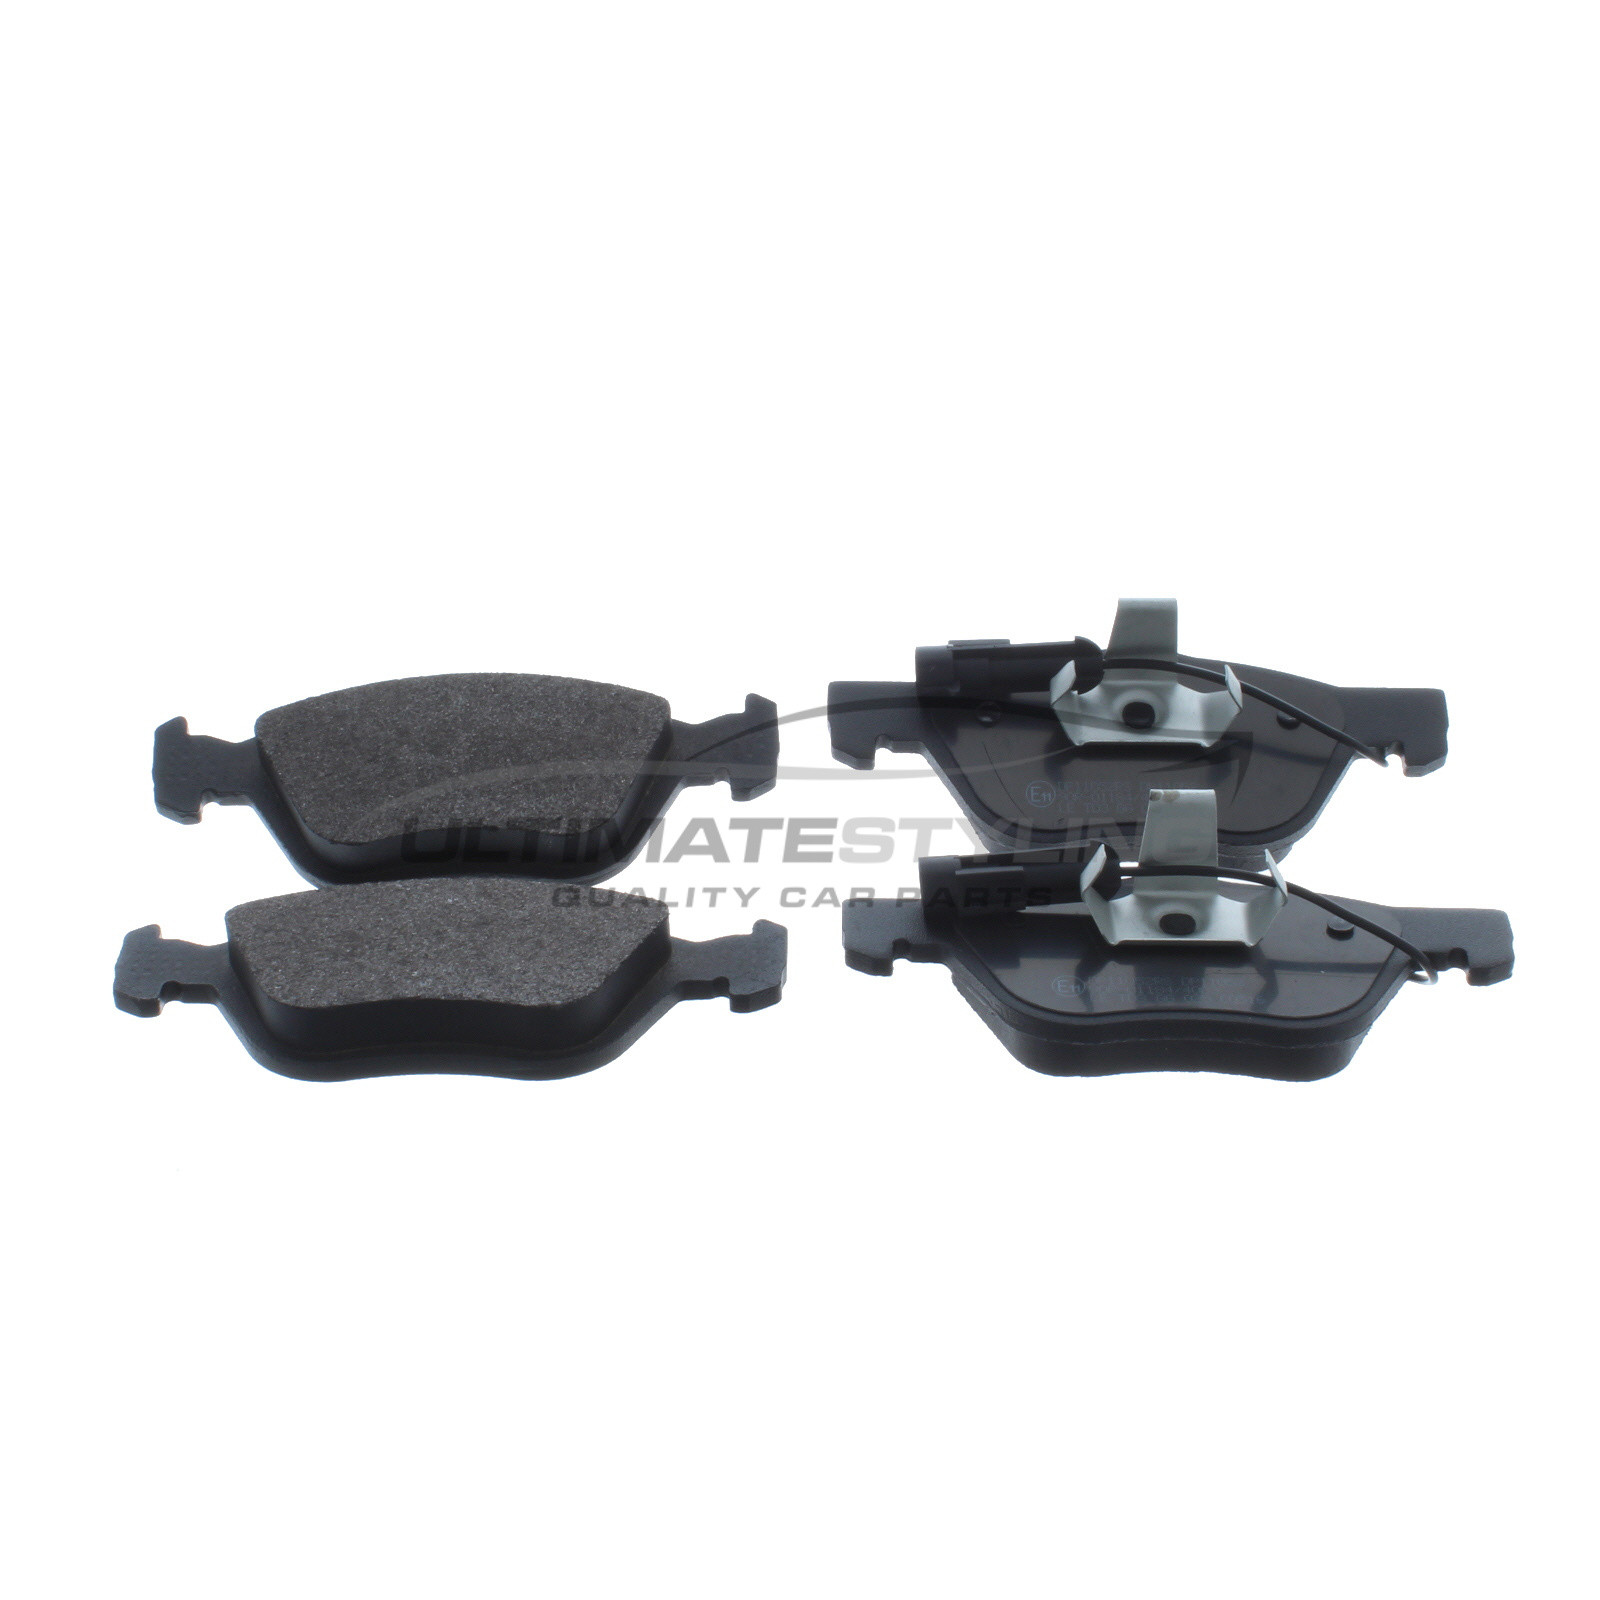 Brake Pads for Alfa Romeo 156